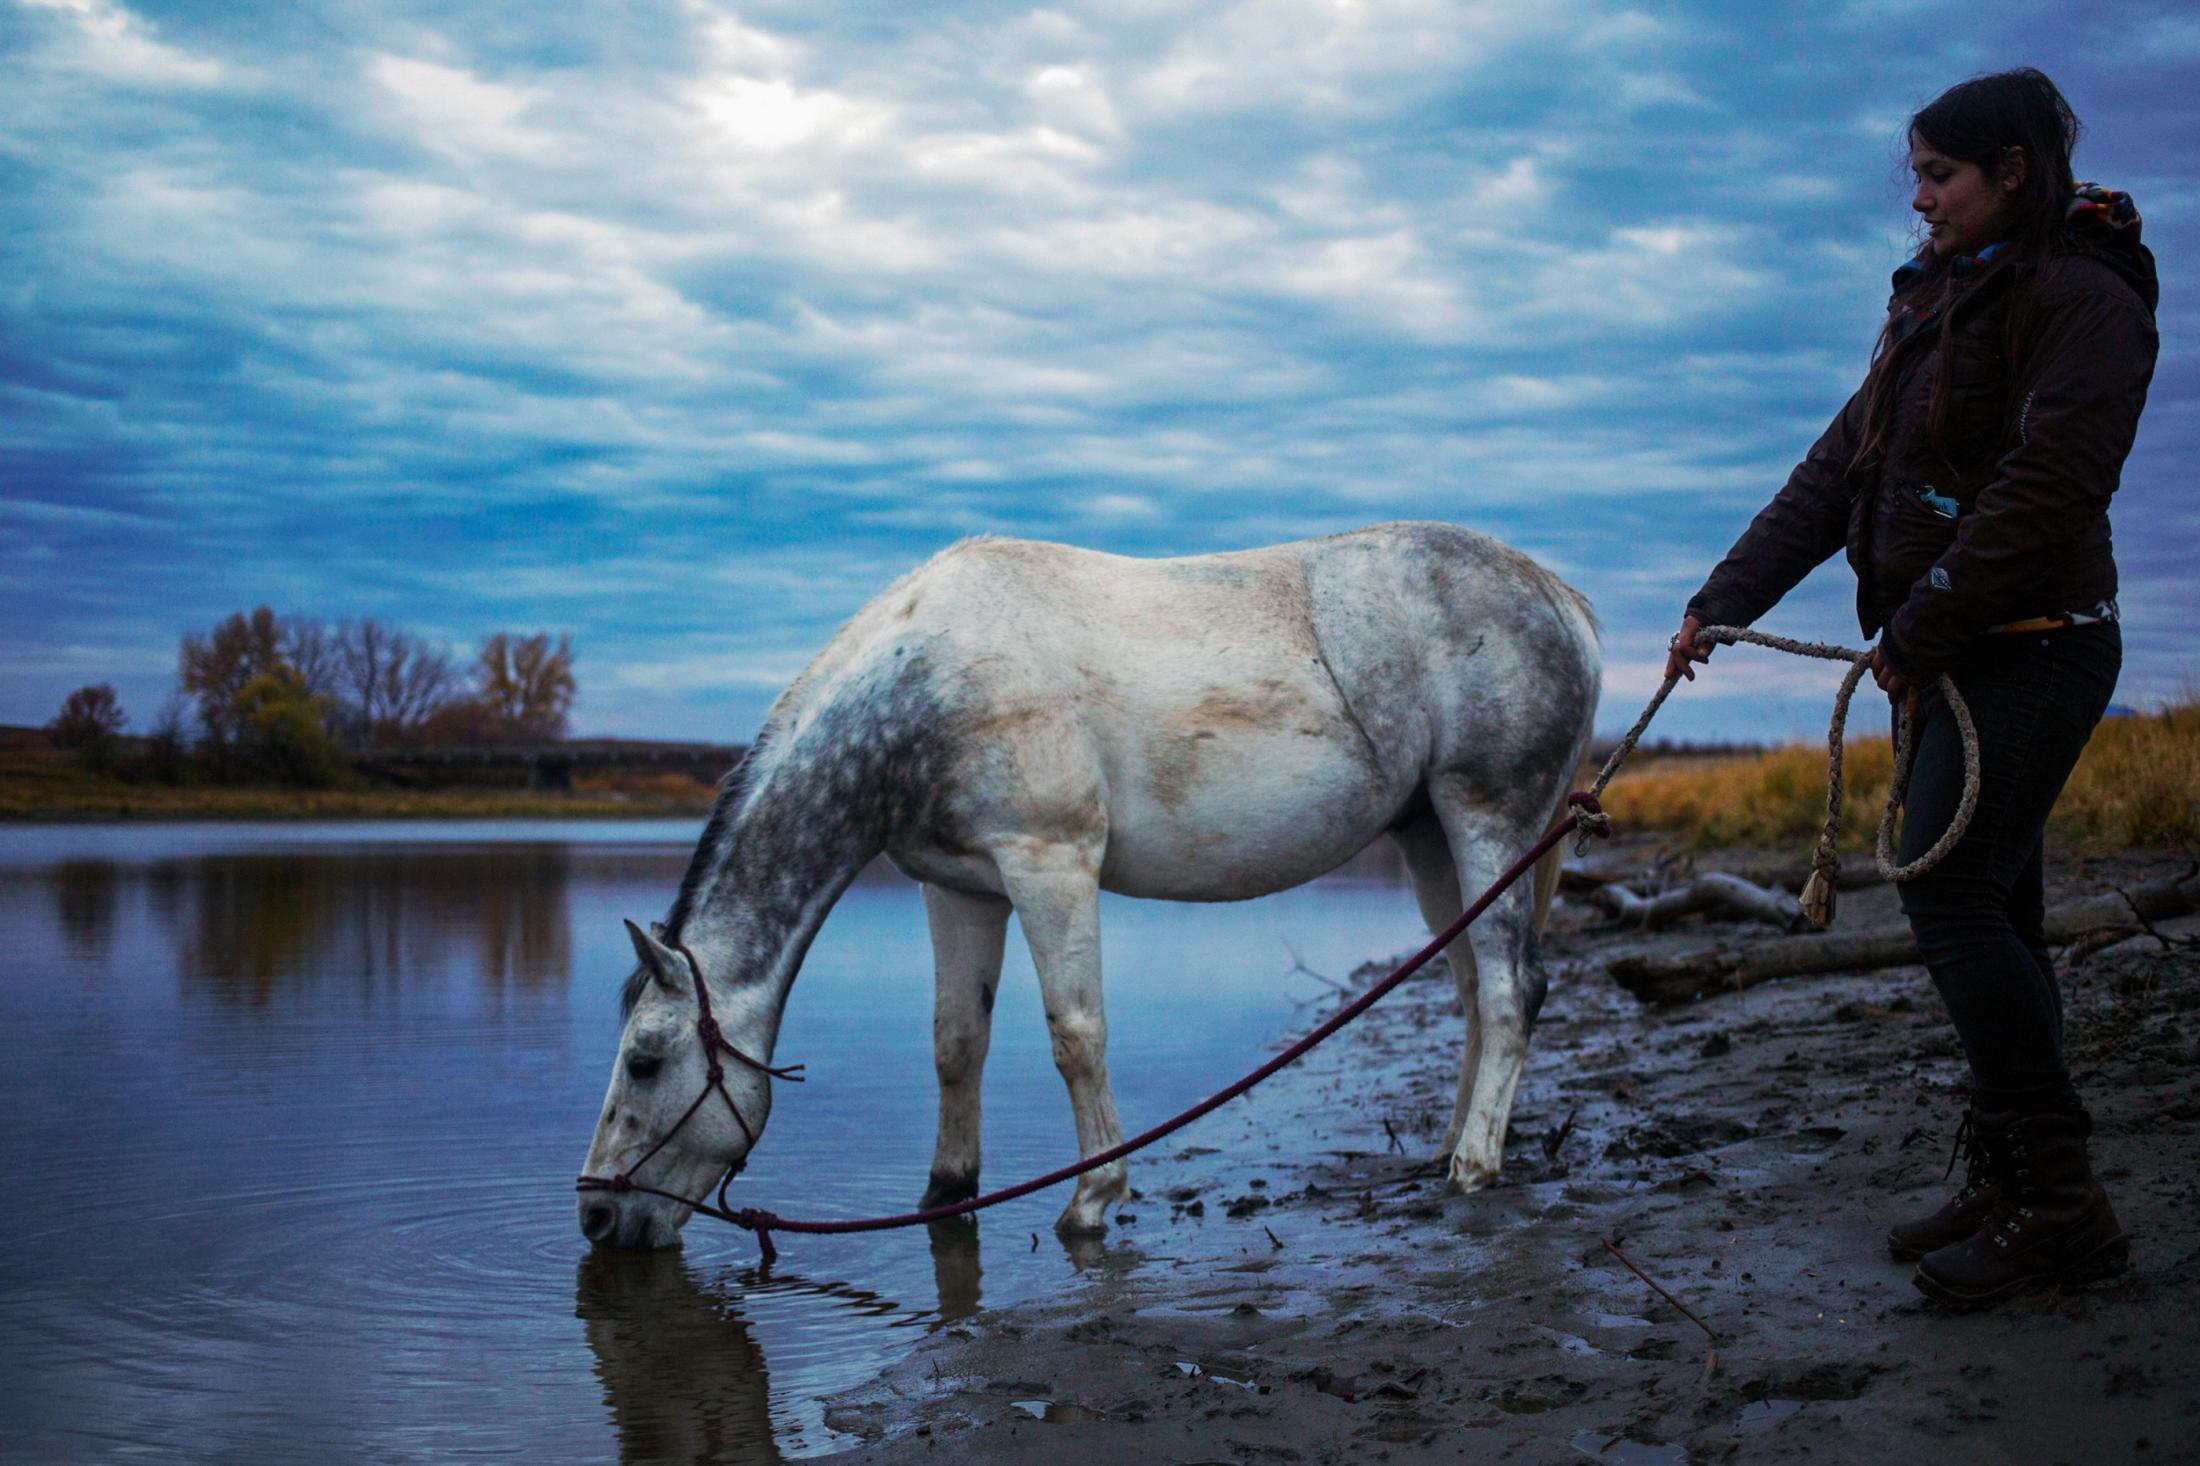 Jerica Meditz brings her new horse, Shota, to a stream so he can drink water at the Sacred Stone Camp in North Dakota. Jerica received the horse from the Standing Rock Horse Society once Shota was injured after being kicked by another horse.